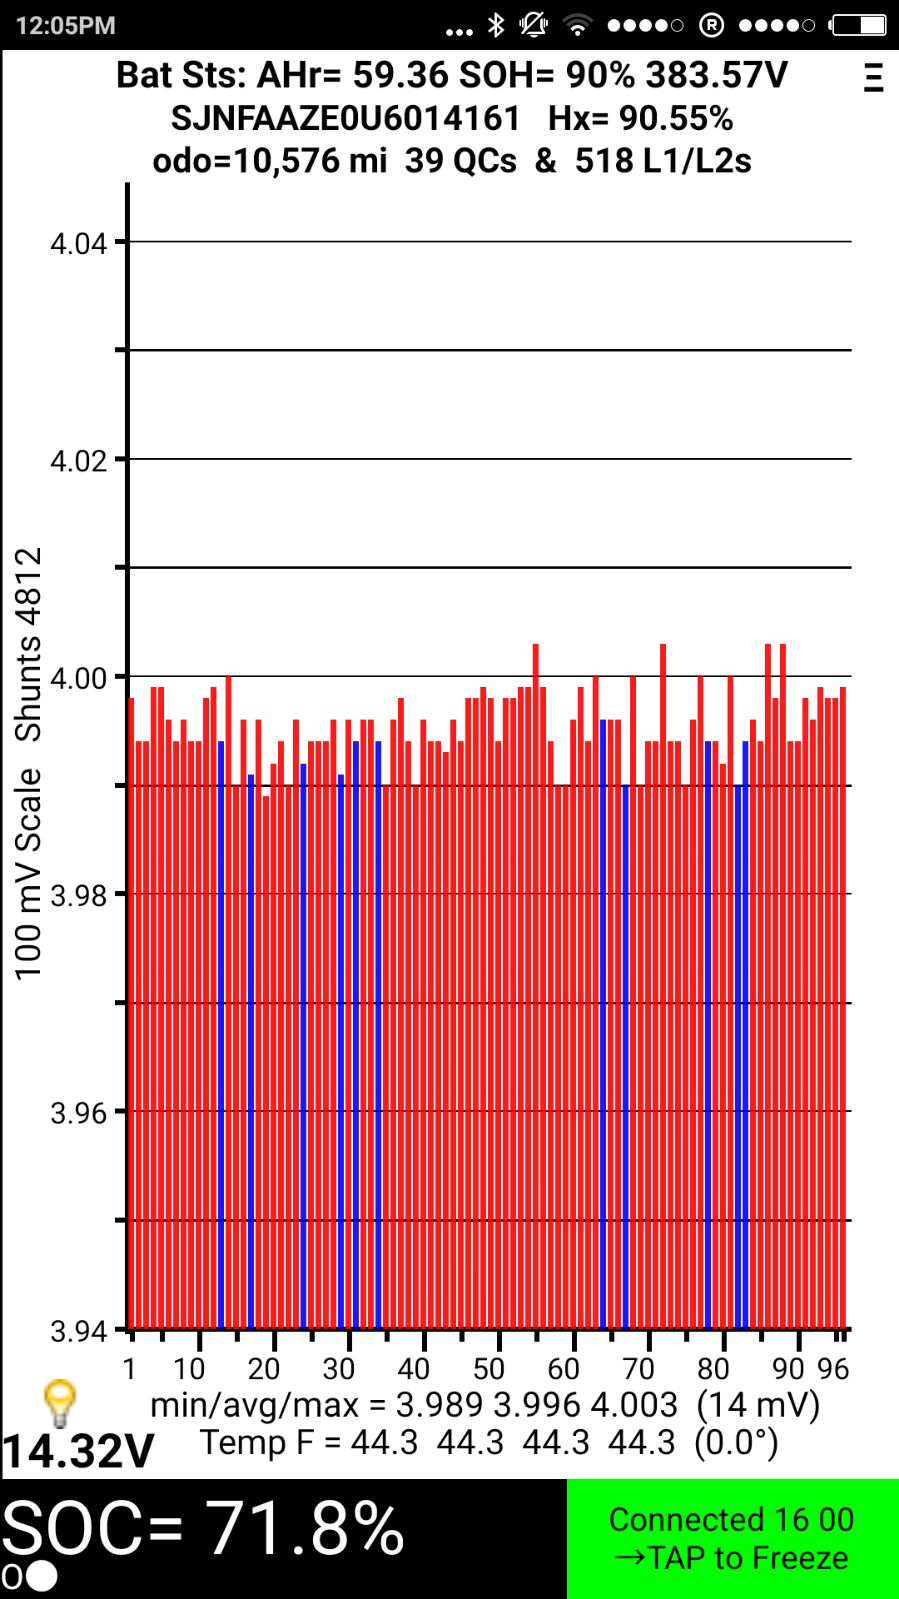 Battery history and health of my Nissan Leaf, as outputted by the Leaf Spy app.